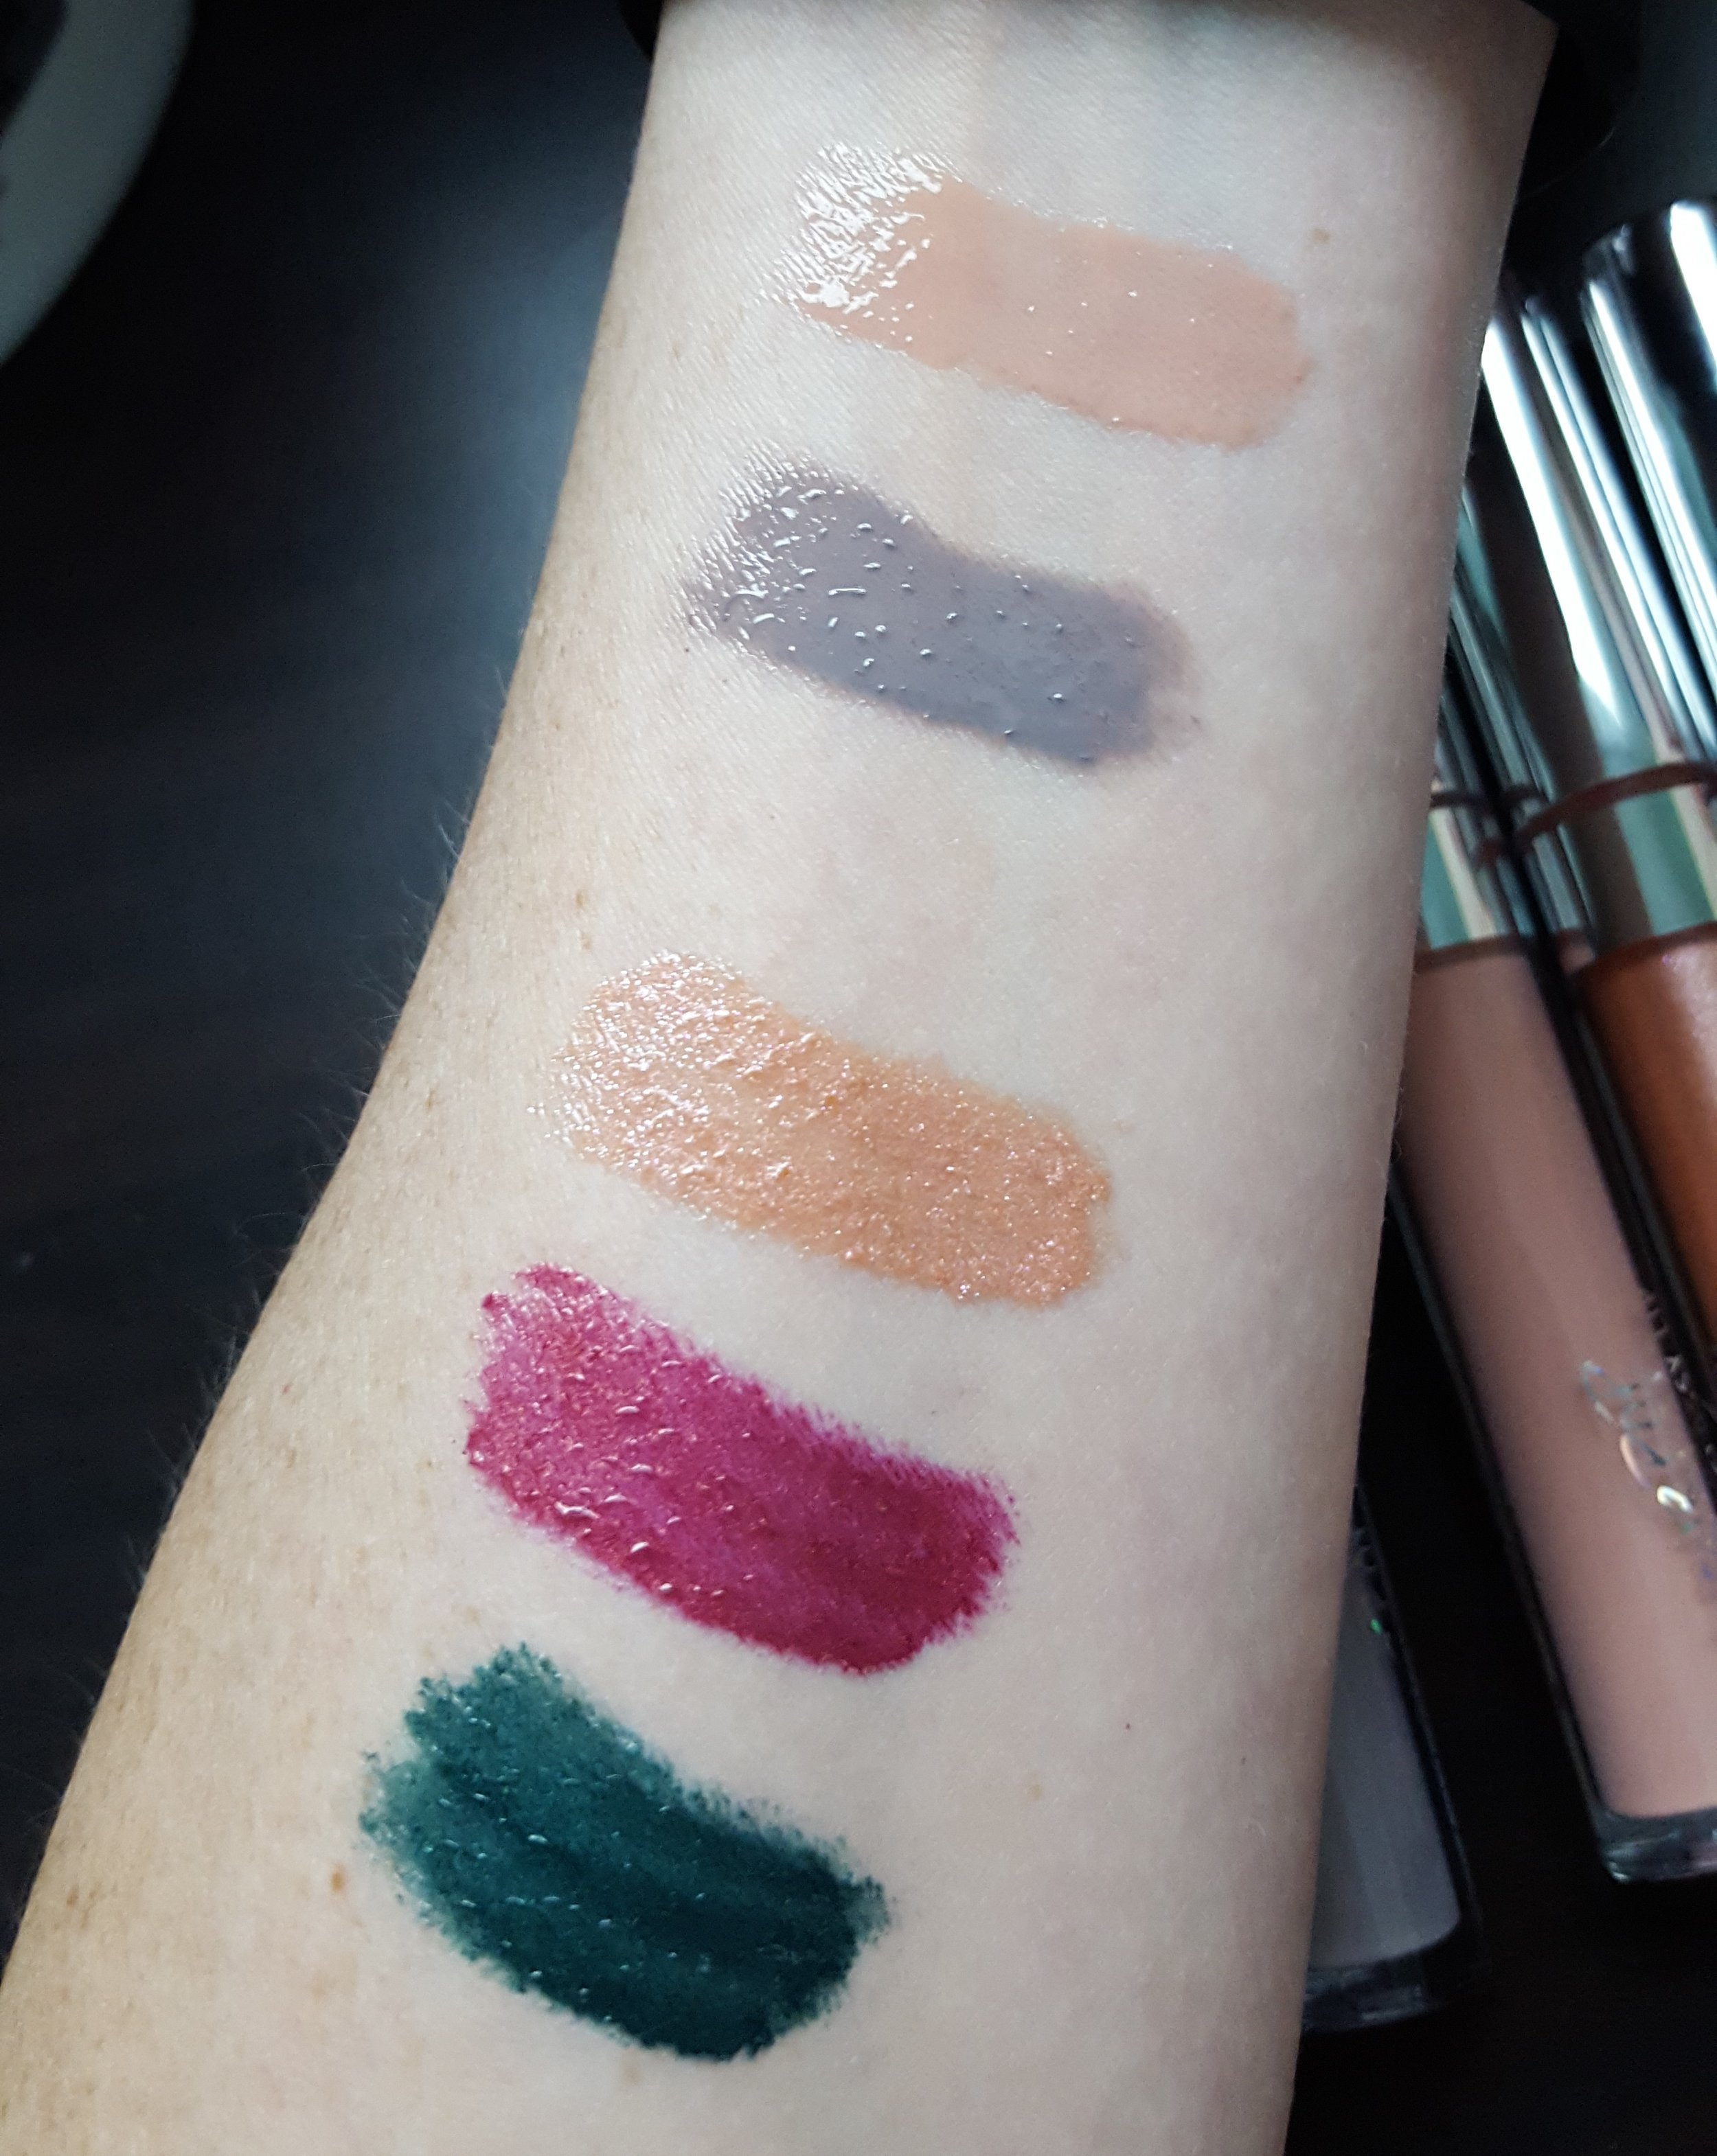 You can see the metallic finish lippies (bottom three) are bit more streaky than the others.